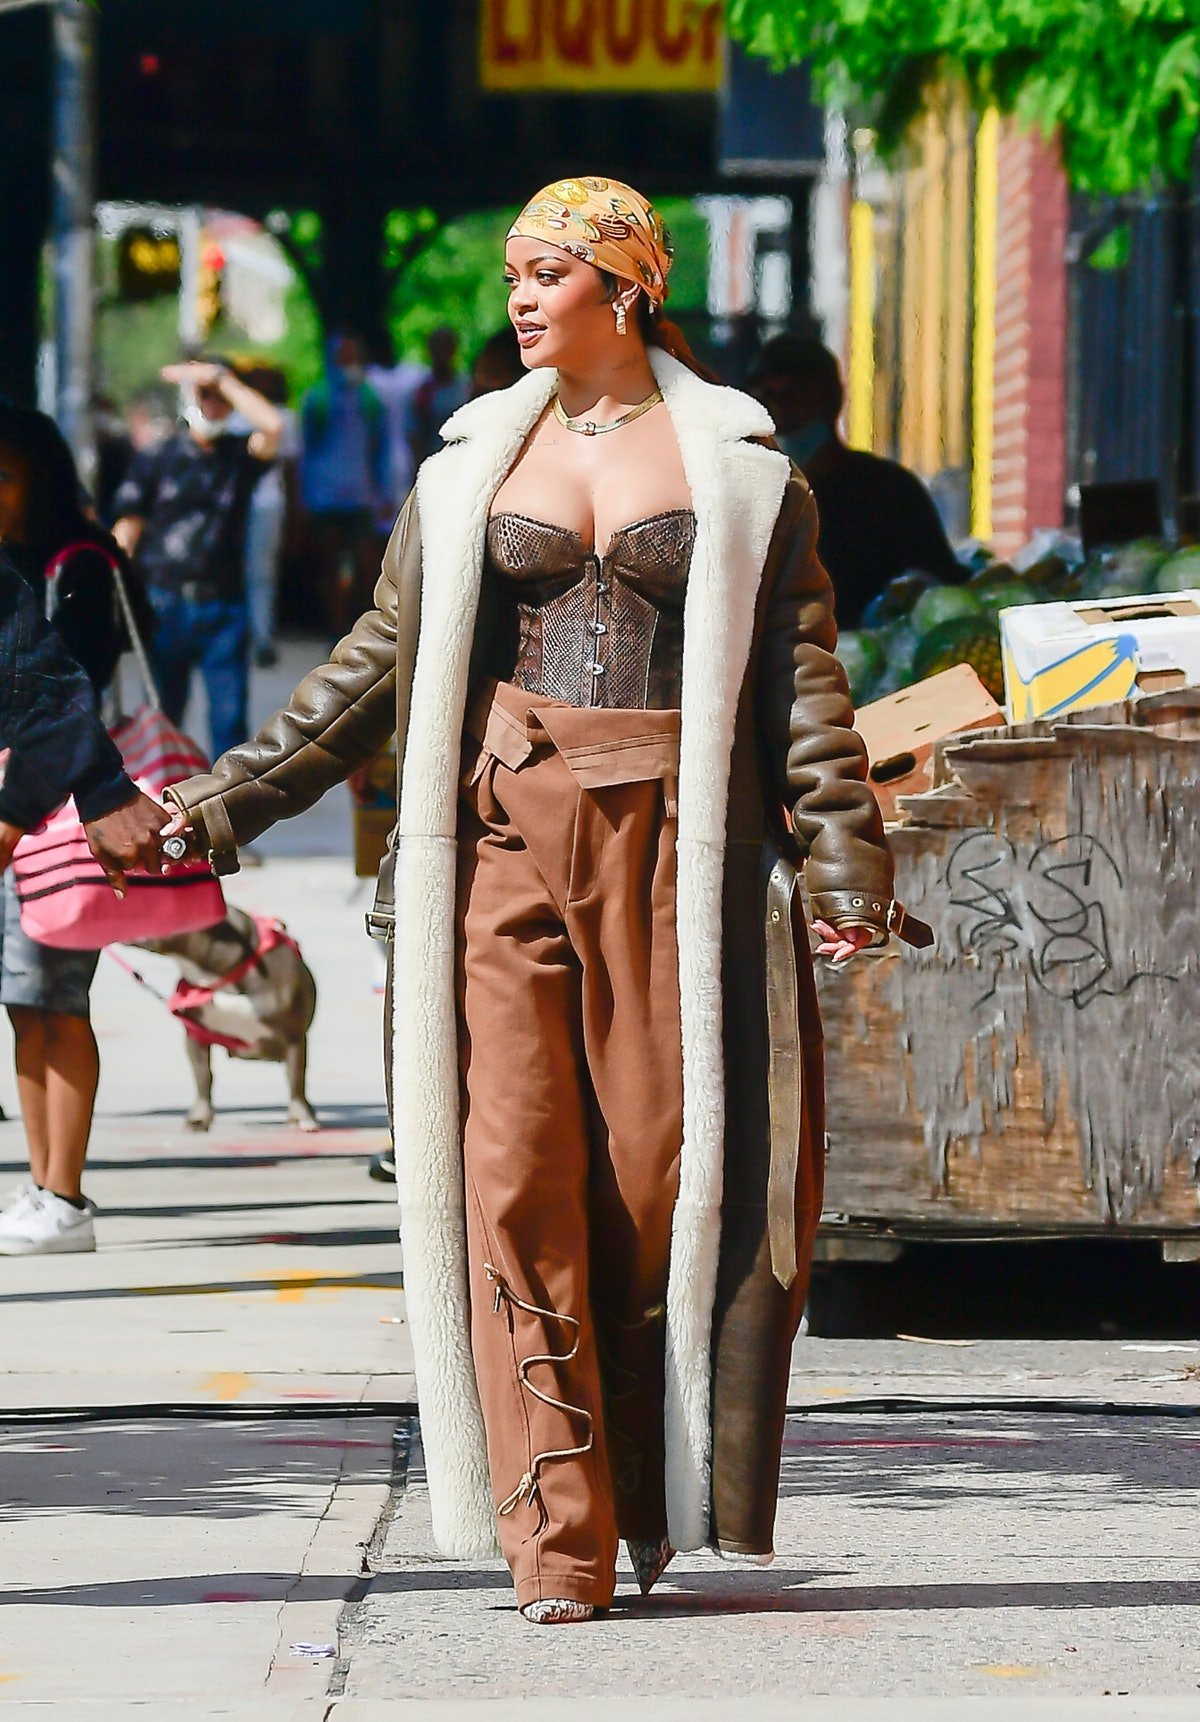 Rihanna is seen filming a music video in the Bronx on July 10, 2021 in New York City.